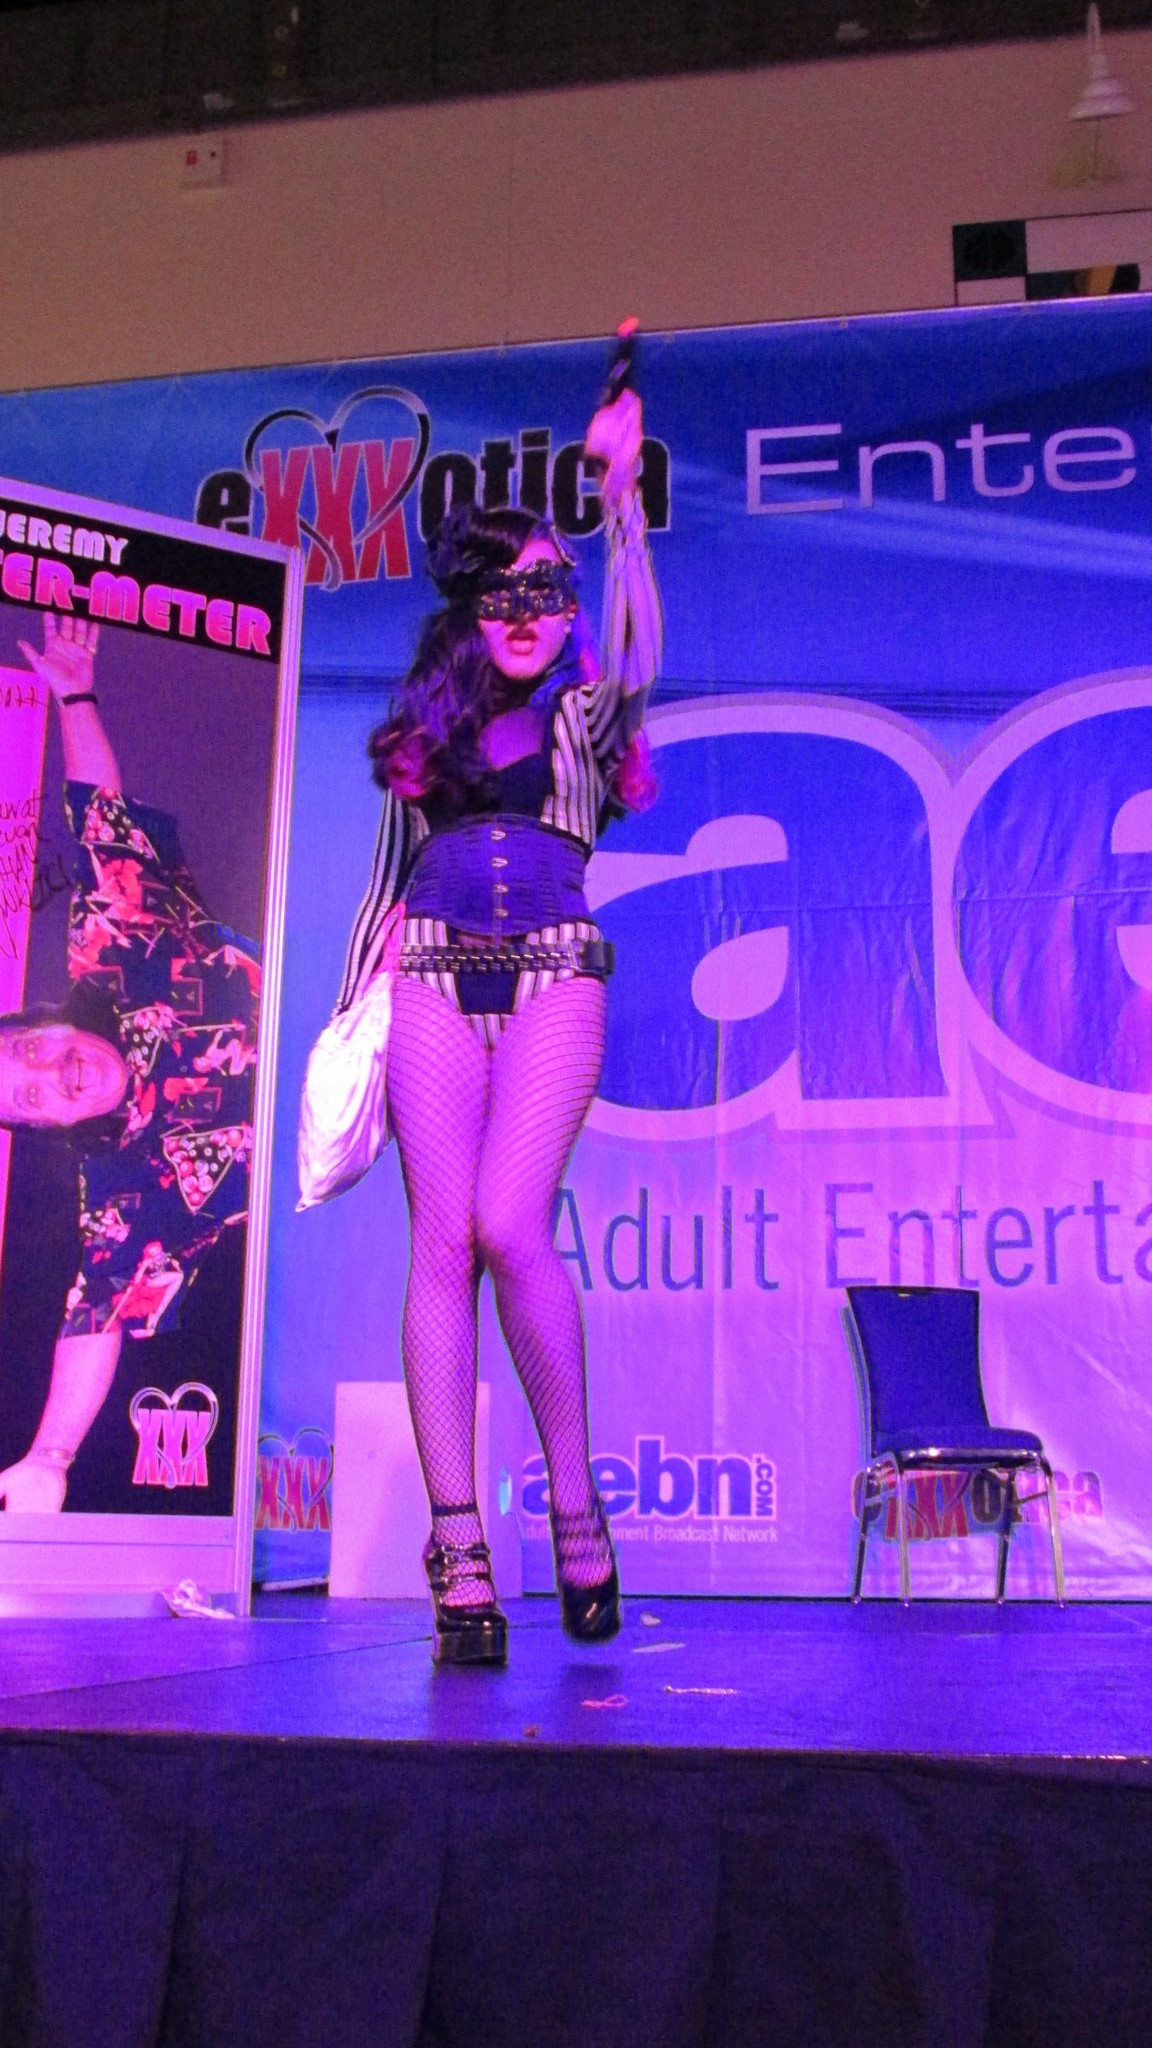 Photos: Exxxotica 2013 in Fort Lauderdale - Exxxotica day 3